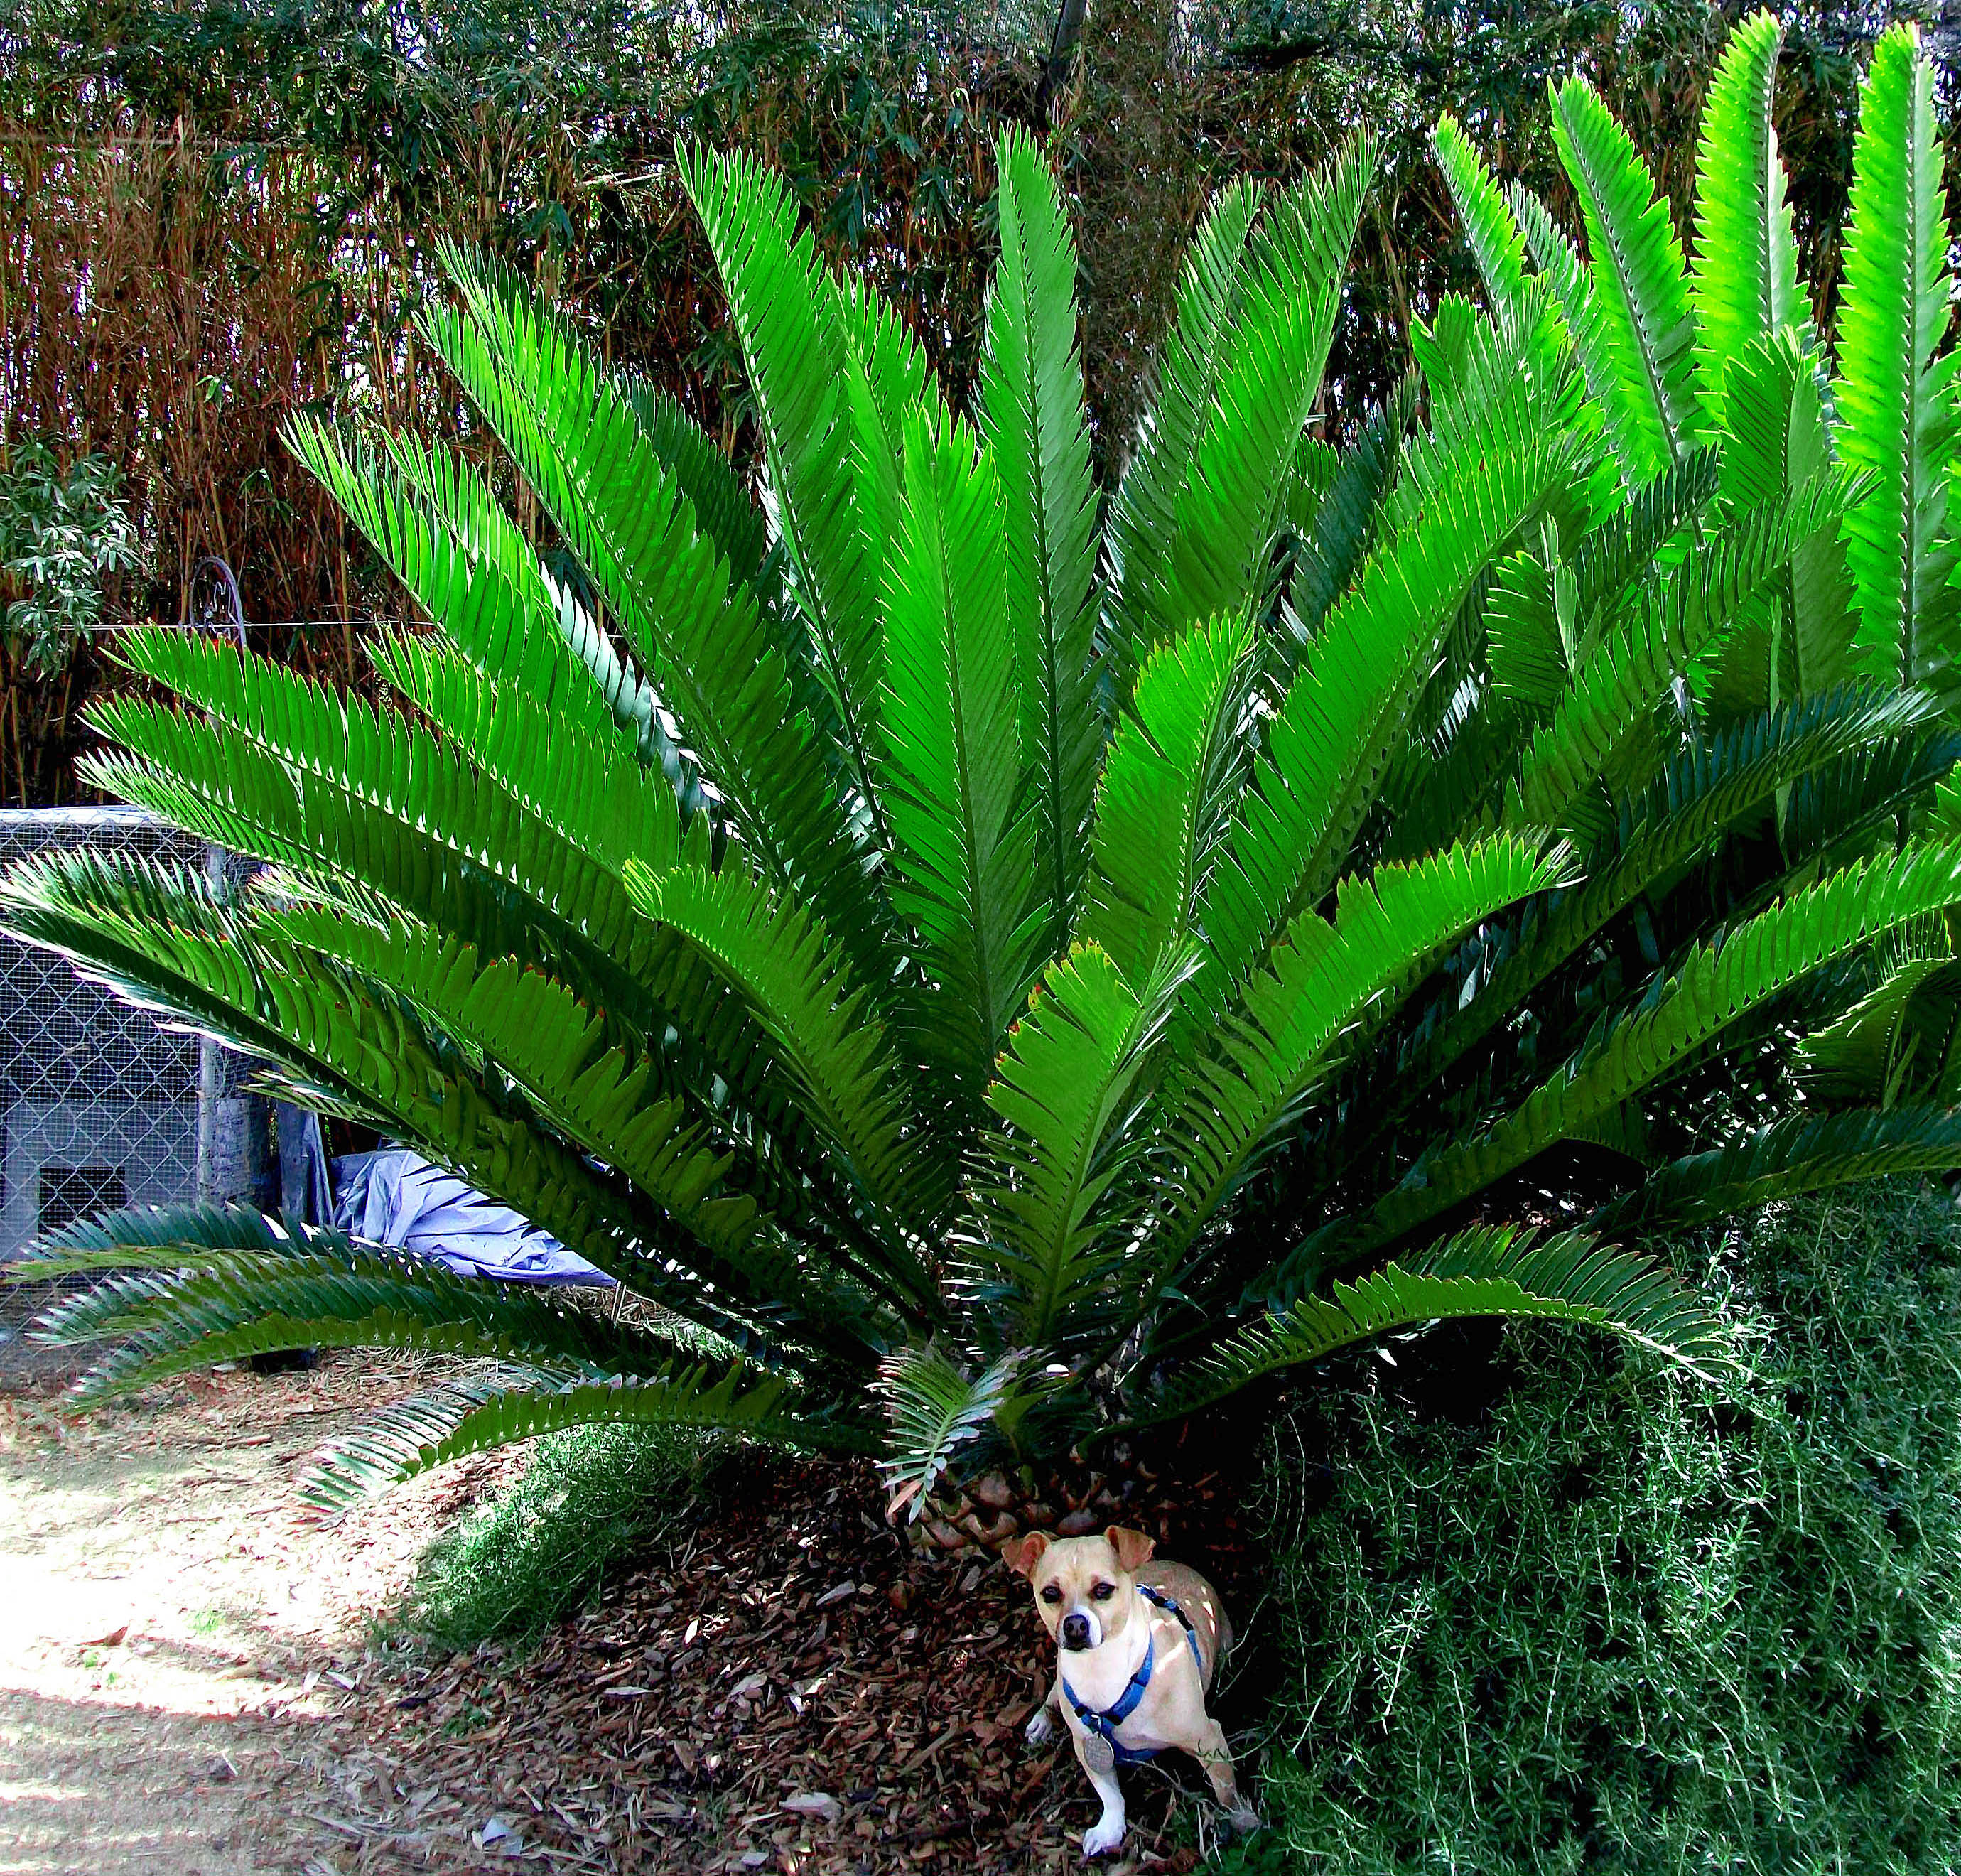 Cycad Definition What Is